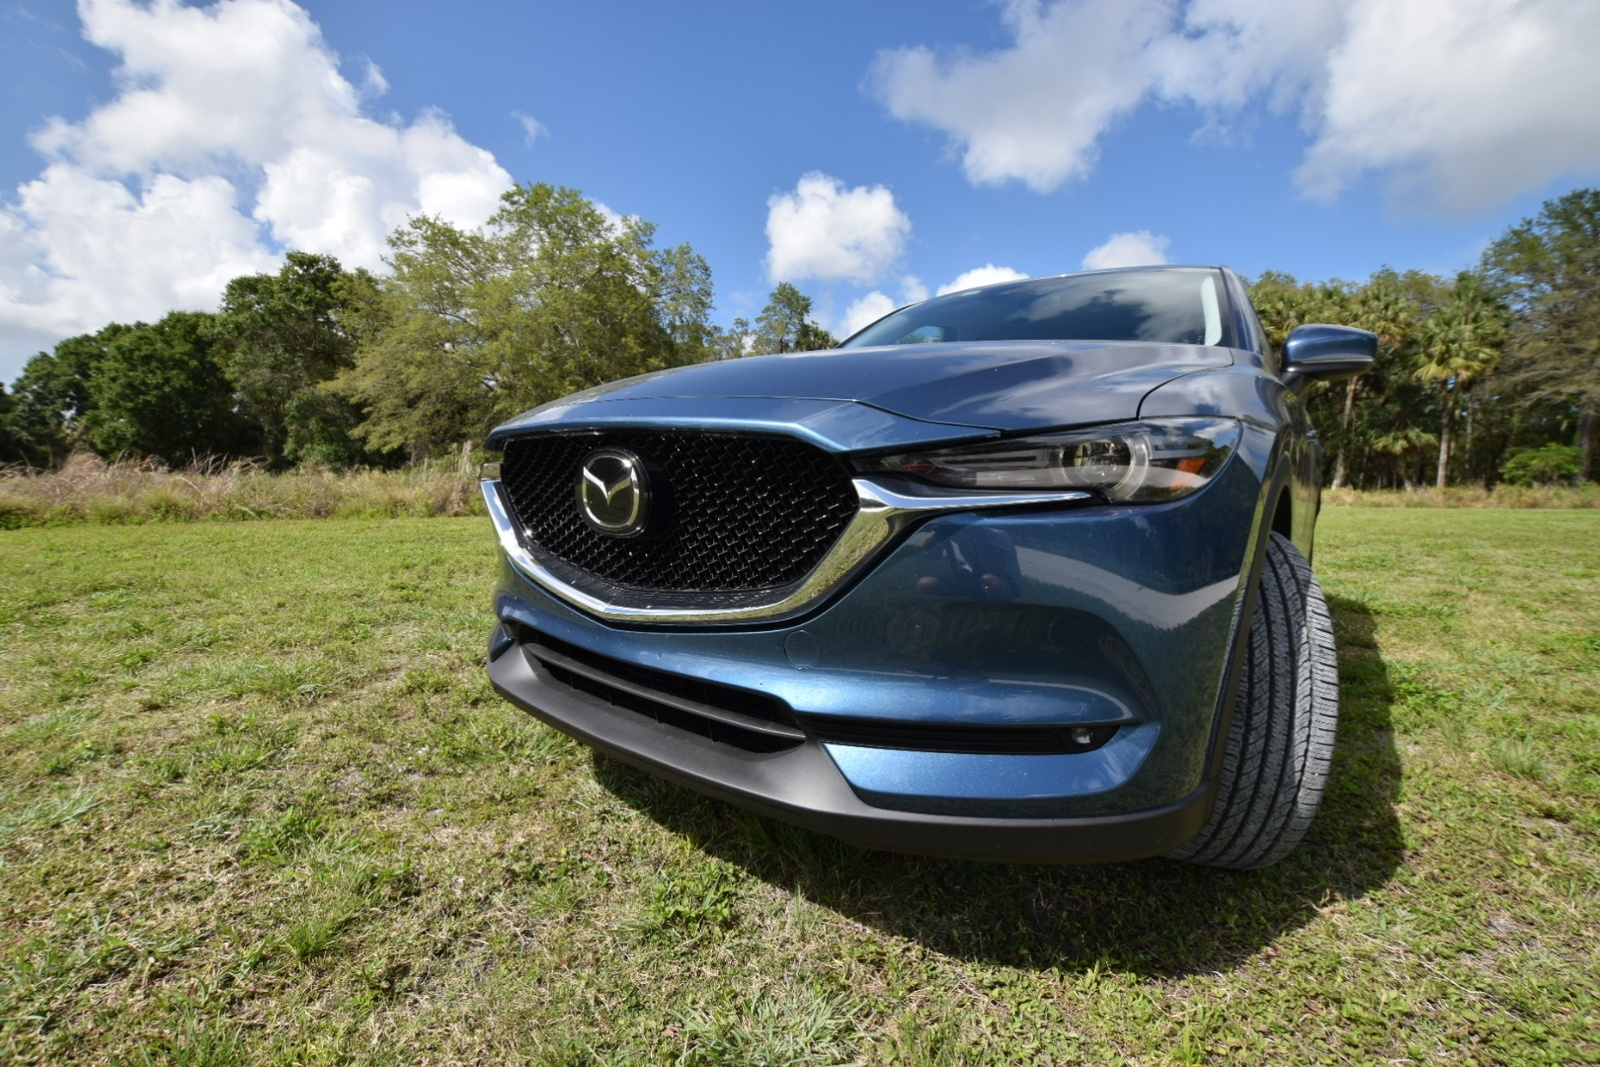 2017 Mazda CX-5 If It's Not Broke Make It Even Better Interior Center Console2017 Mazda CX-5 If It's Not Broke Make It Even Better Grill and Headlight